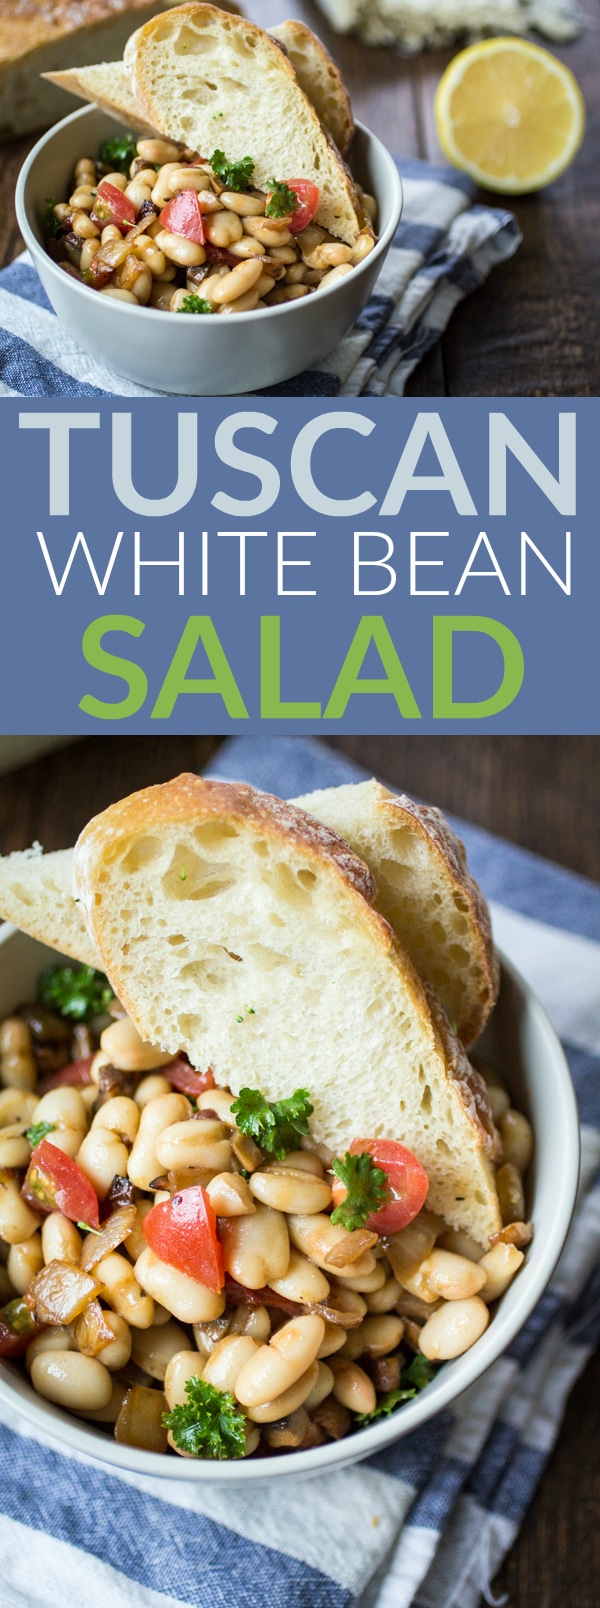 Sometimes, all you want for dinner is bread, butter, and wine. Class that up a bit with this Tuscan White Bean Salad! Eat on top of buttered crusty bread and serve with a glass of red wine - dinner is served!